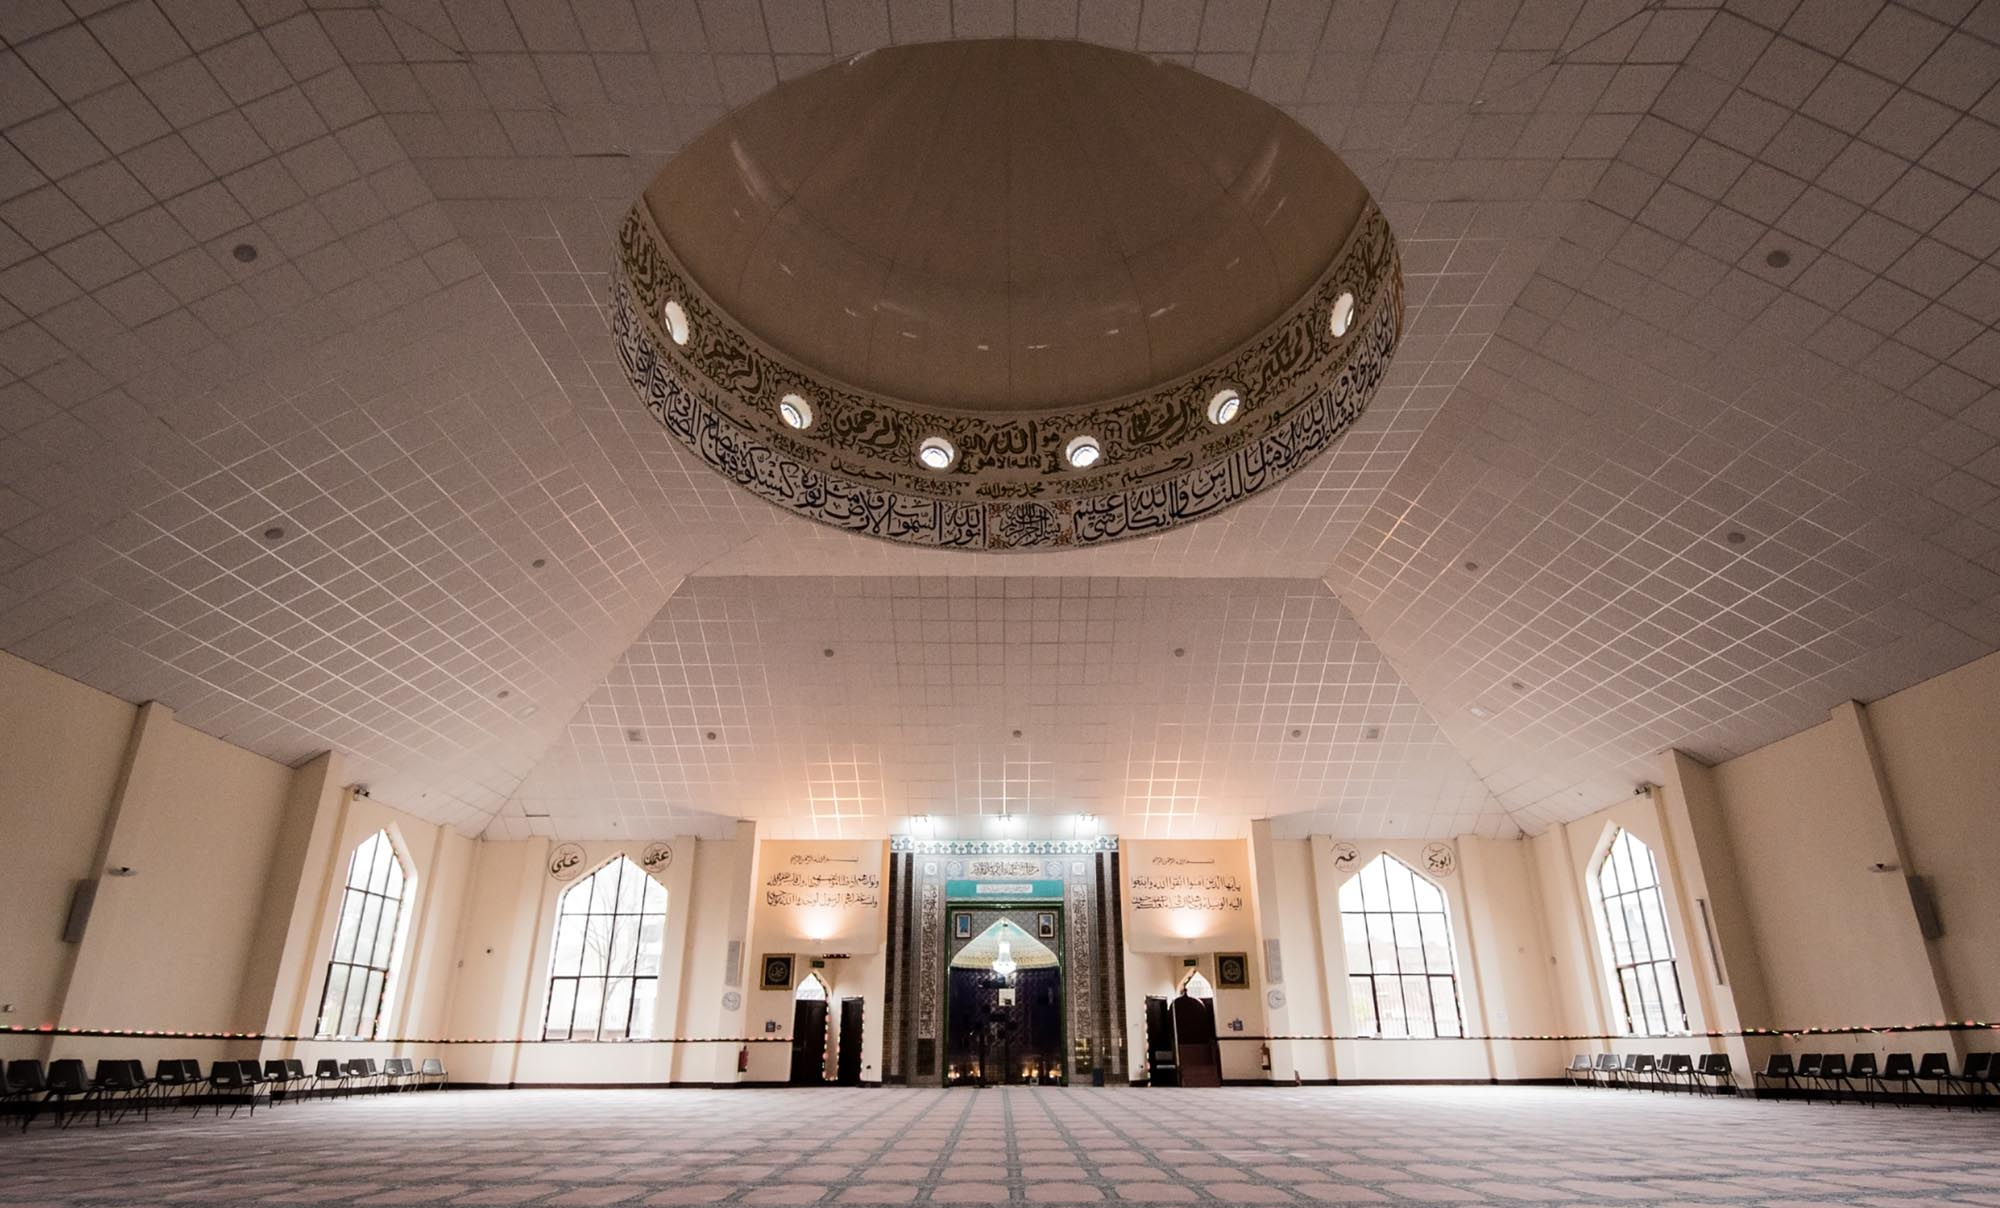 The impressive interior showing the inside of the dome -